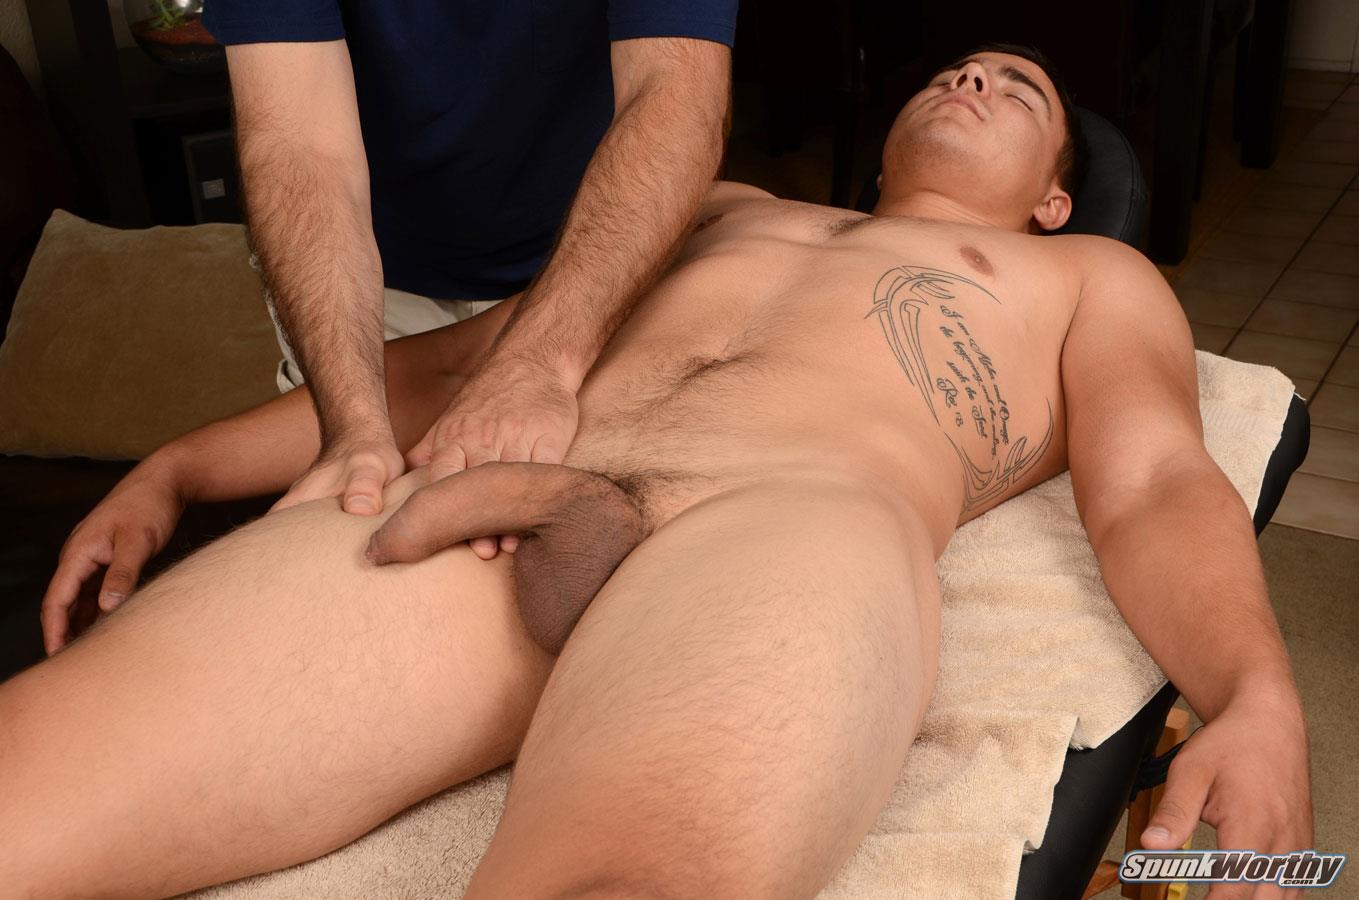 SpunkWorthy-Yuri-Straight-Marine-Getting-Massage-With-A-Happy-Ending-Big-Uncut-Cock-Amateur-Gay-Porn-09 Straight Uncut Marine Gets A Massage With A Happy Ending From A Guy